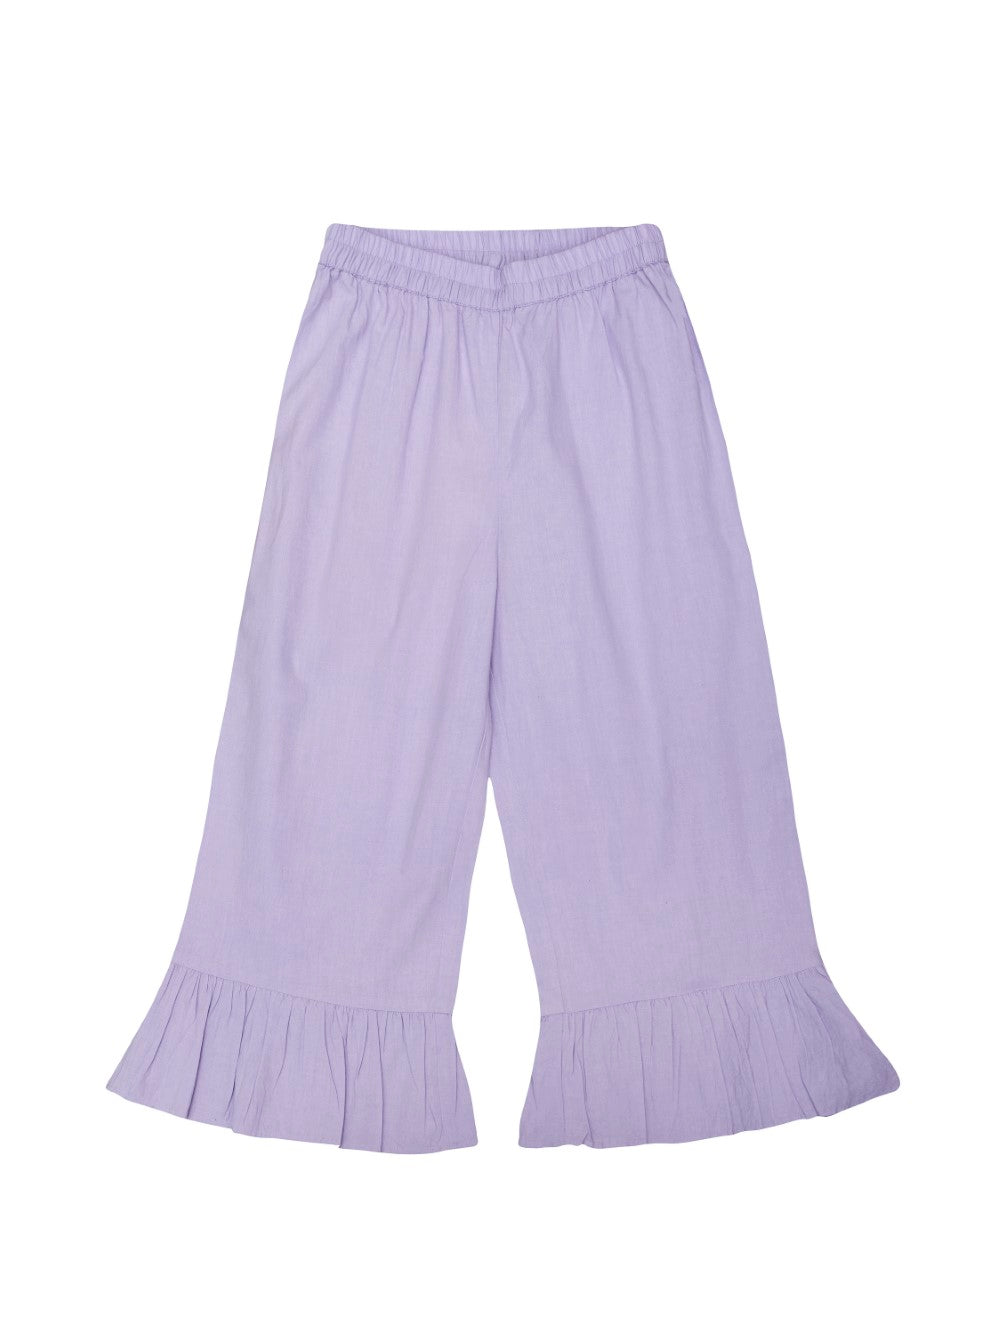 Lavendar Ruffled Pants